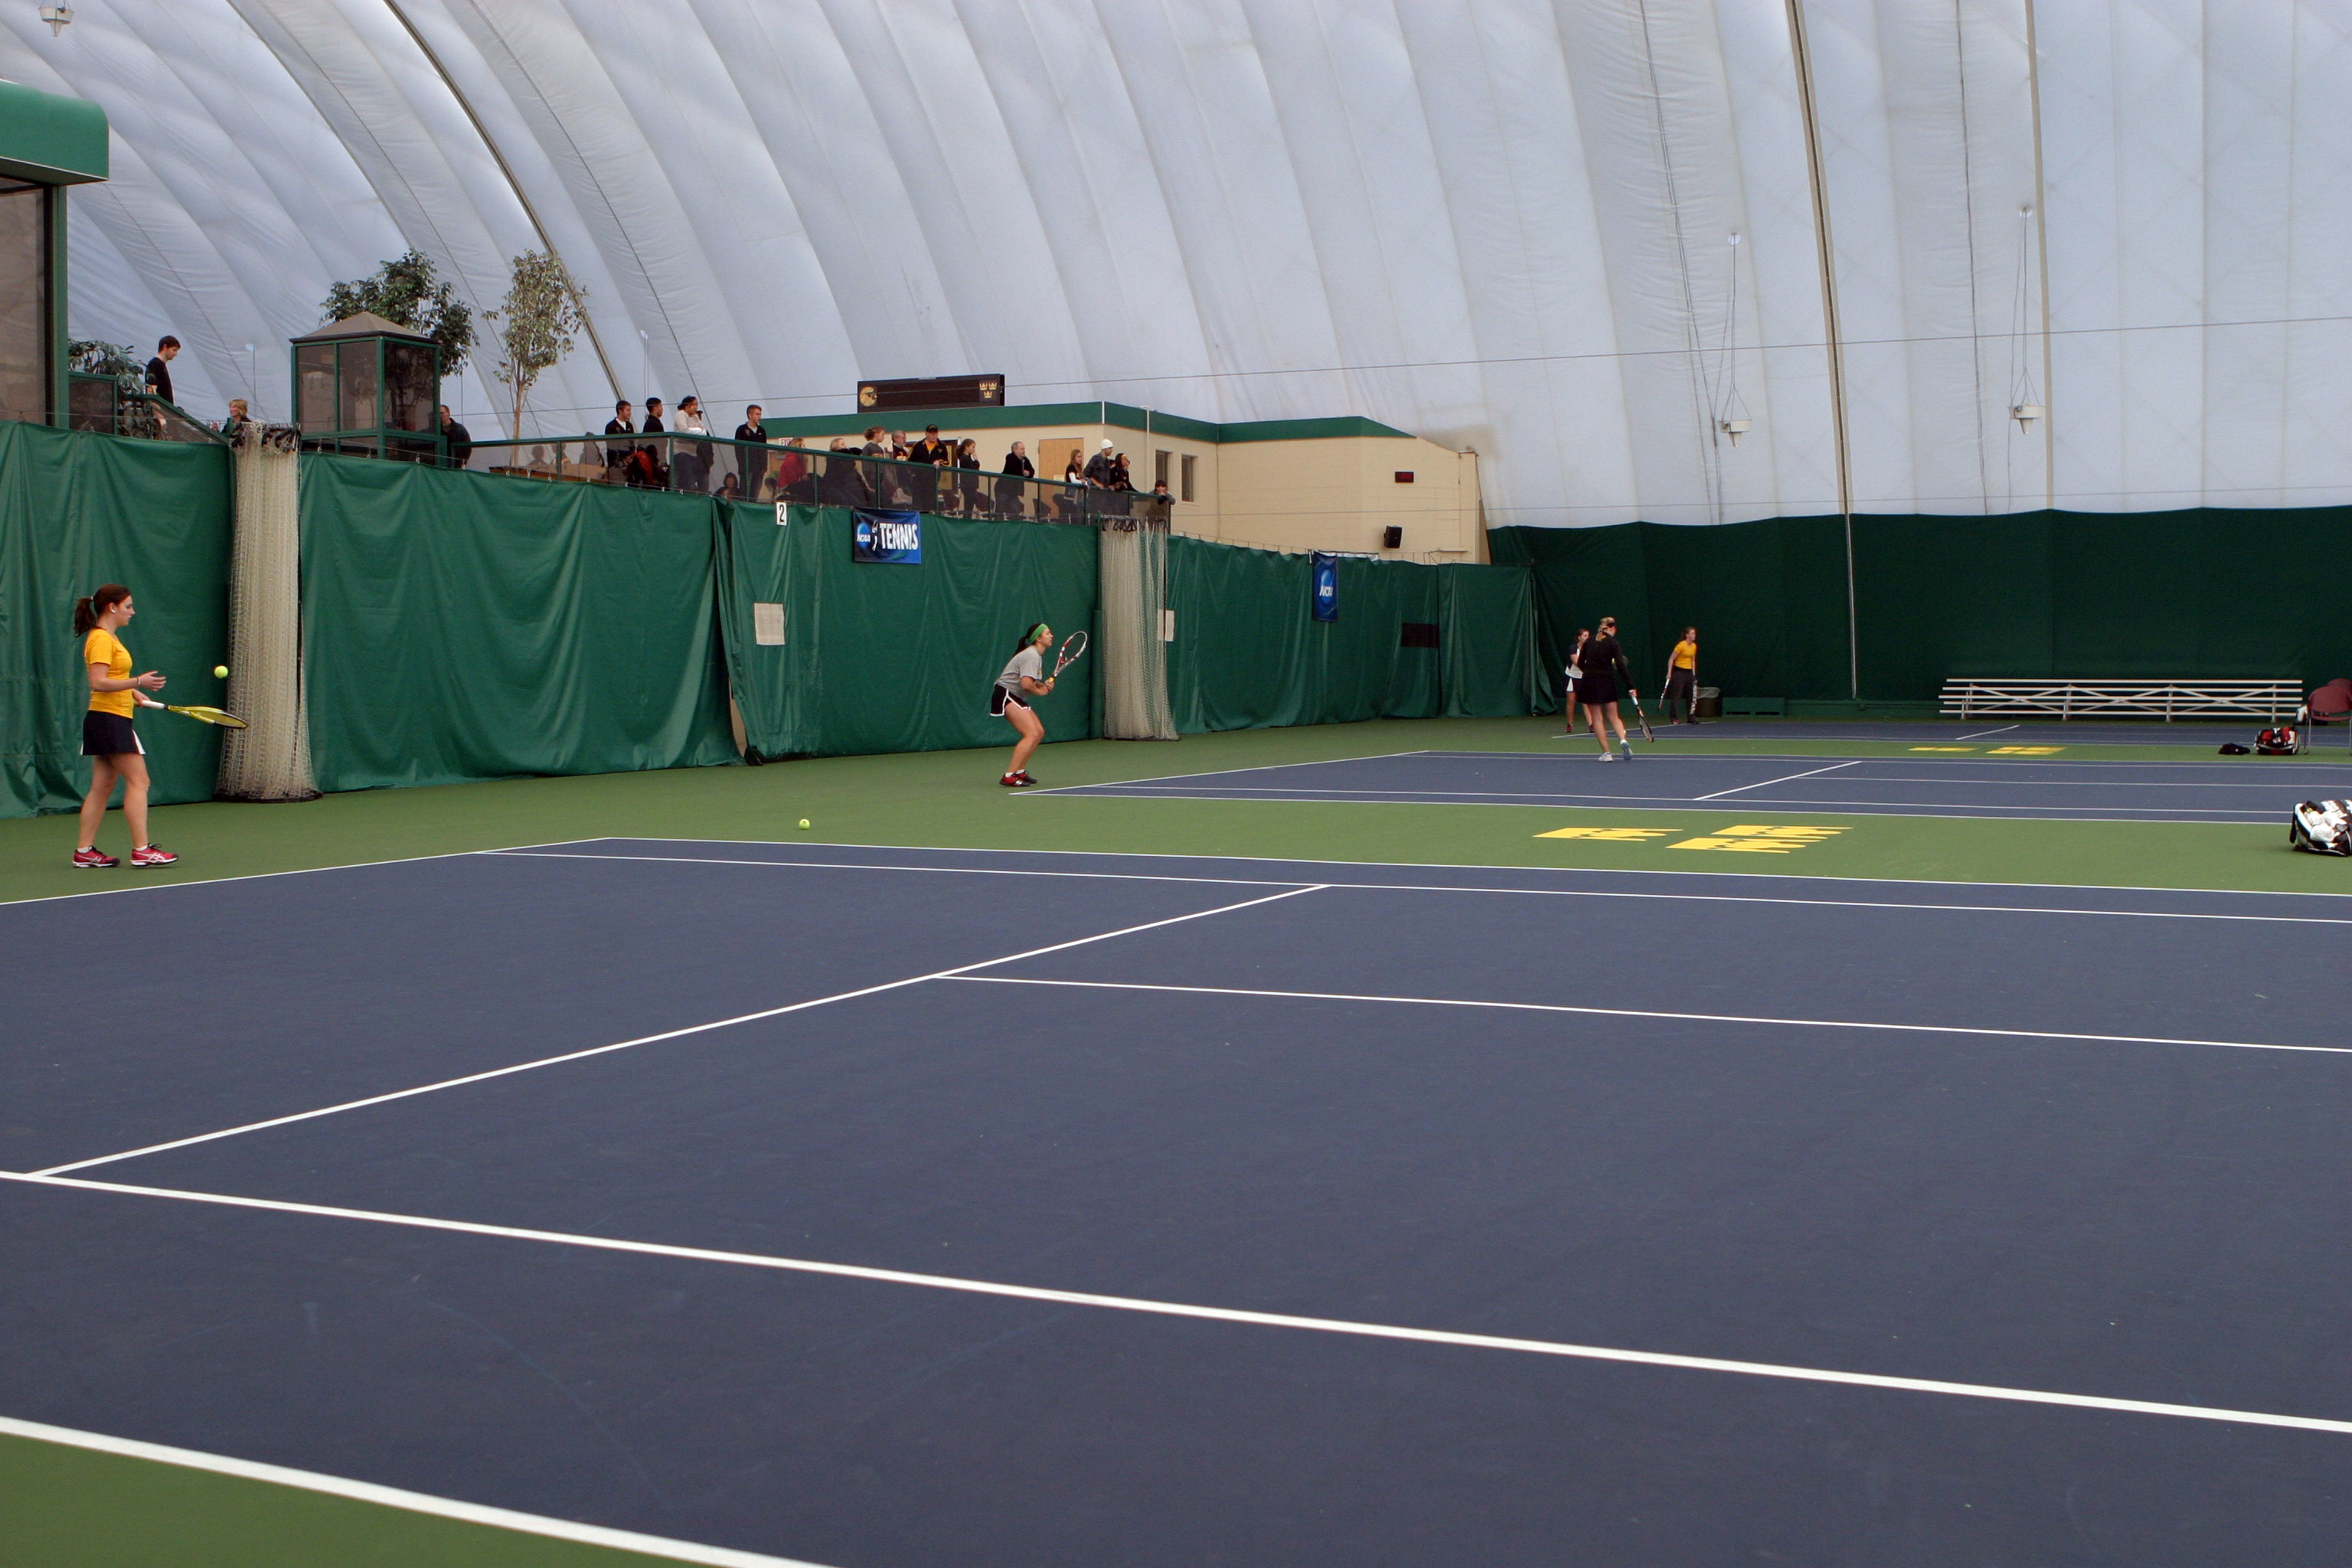 The Gustie women's tennis team opened its home schedule with a 6-3 win over Augustana on Saturday.